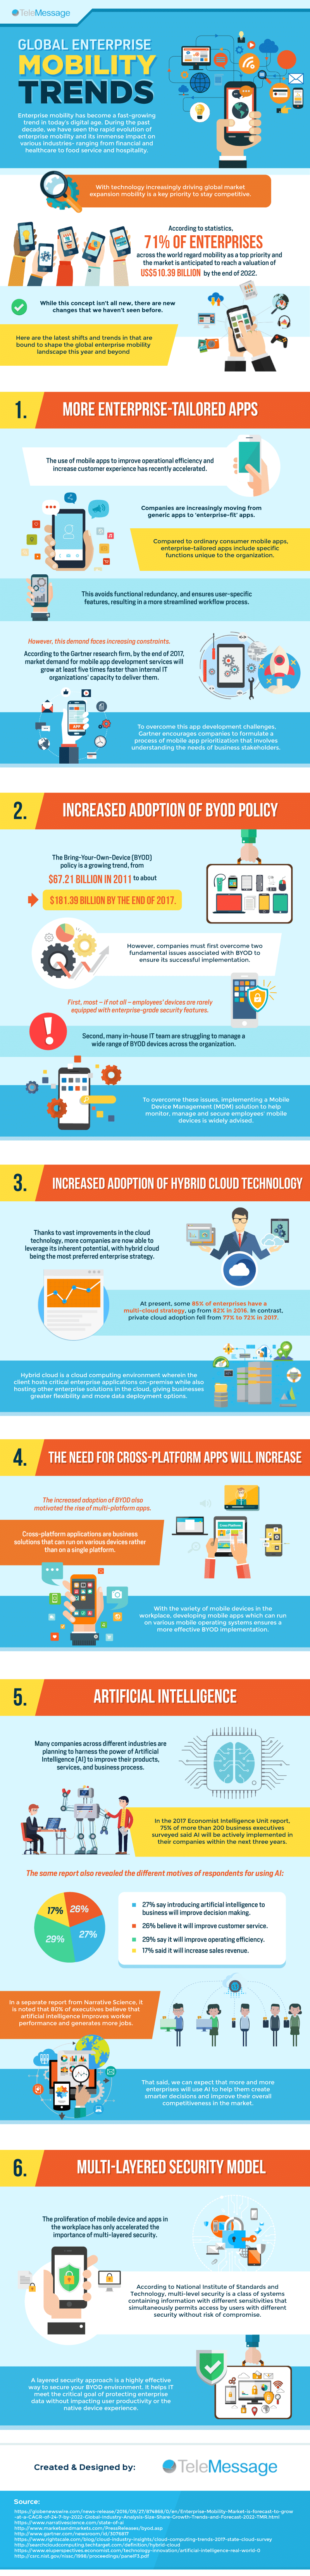 Global Enterprise Mobility Trends